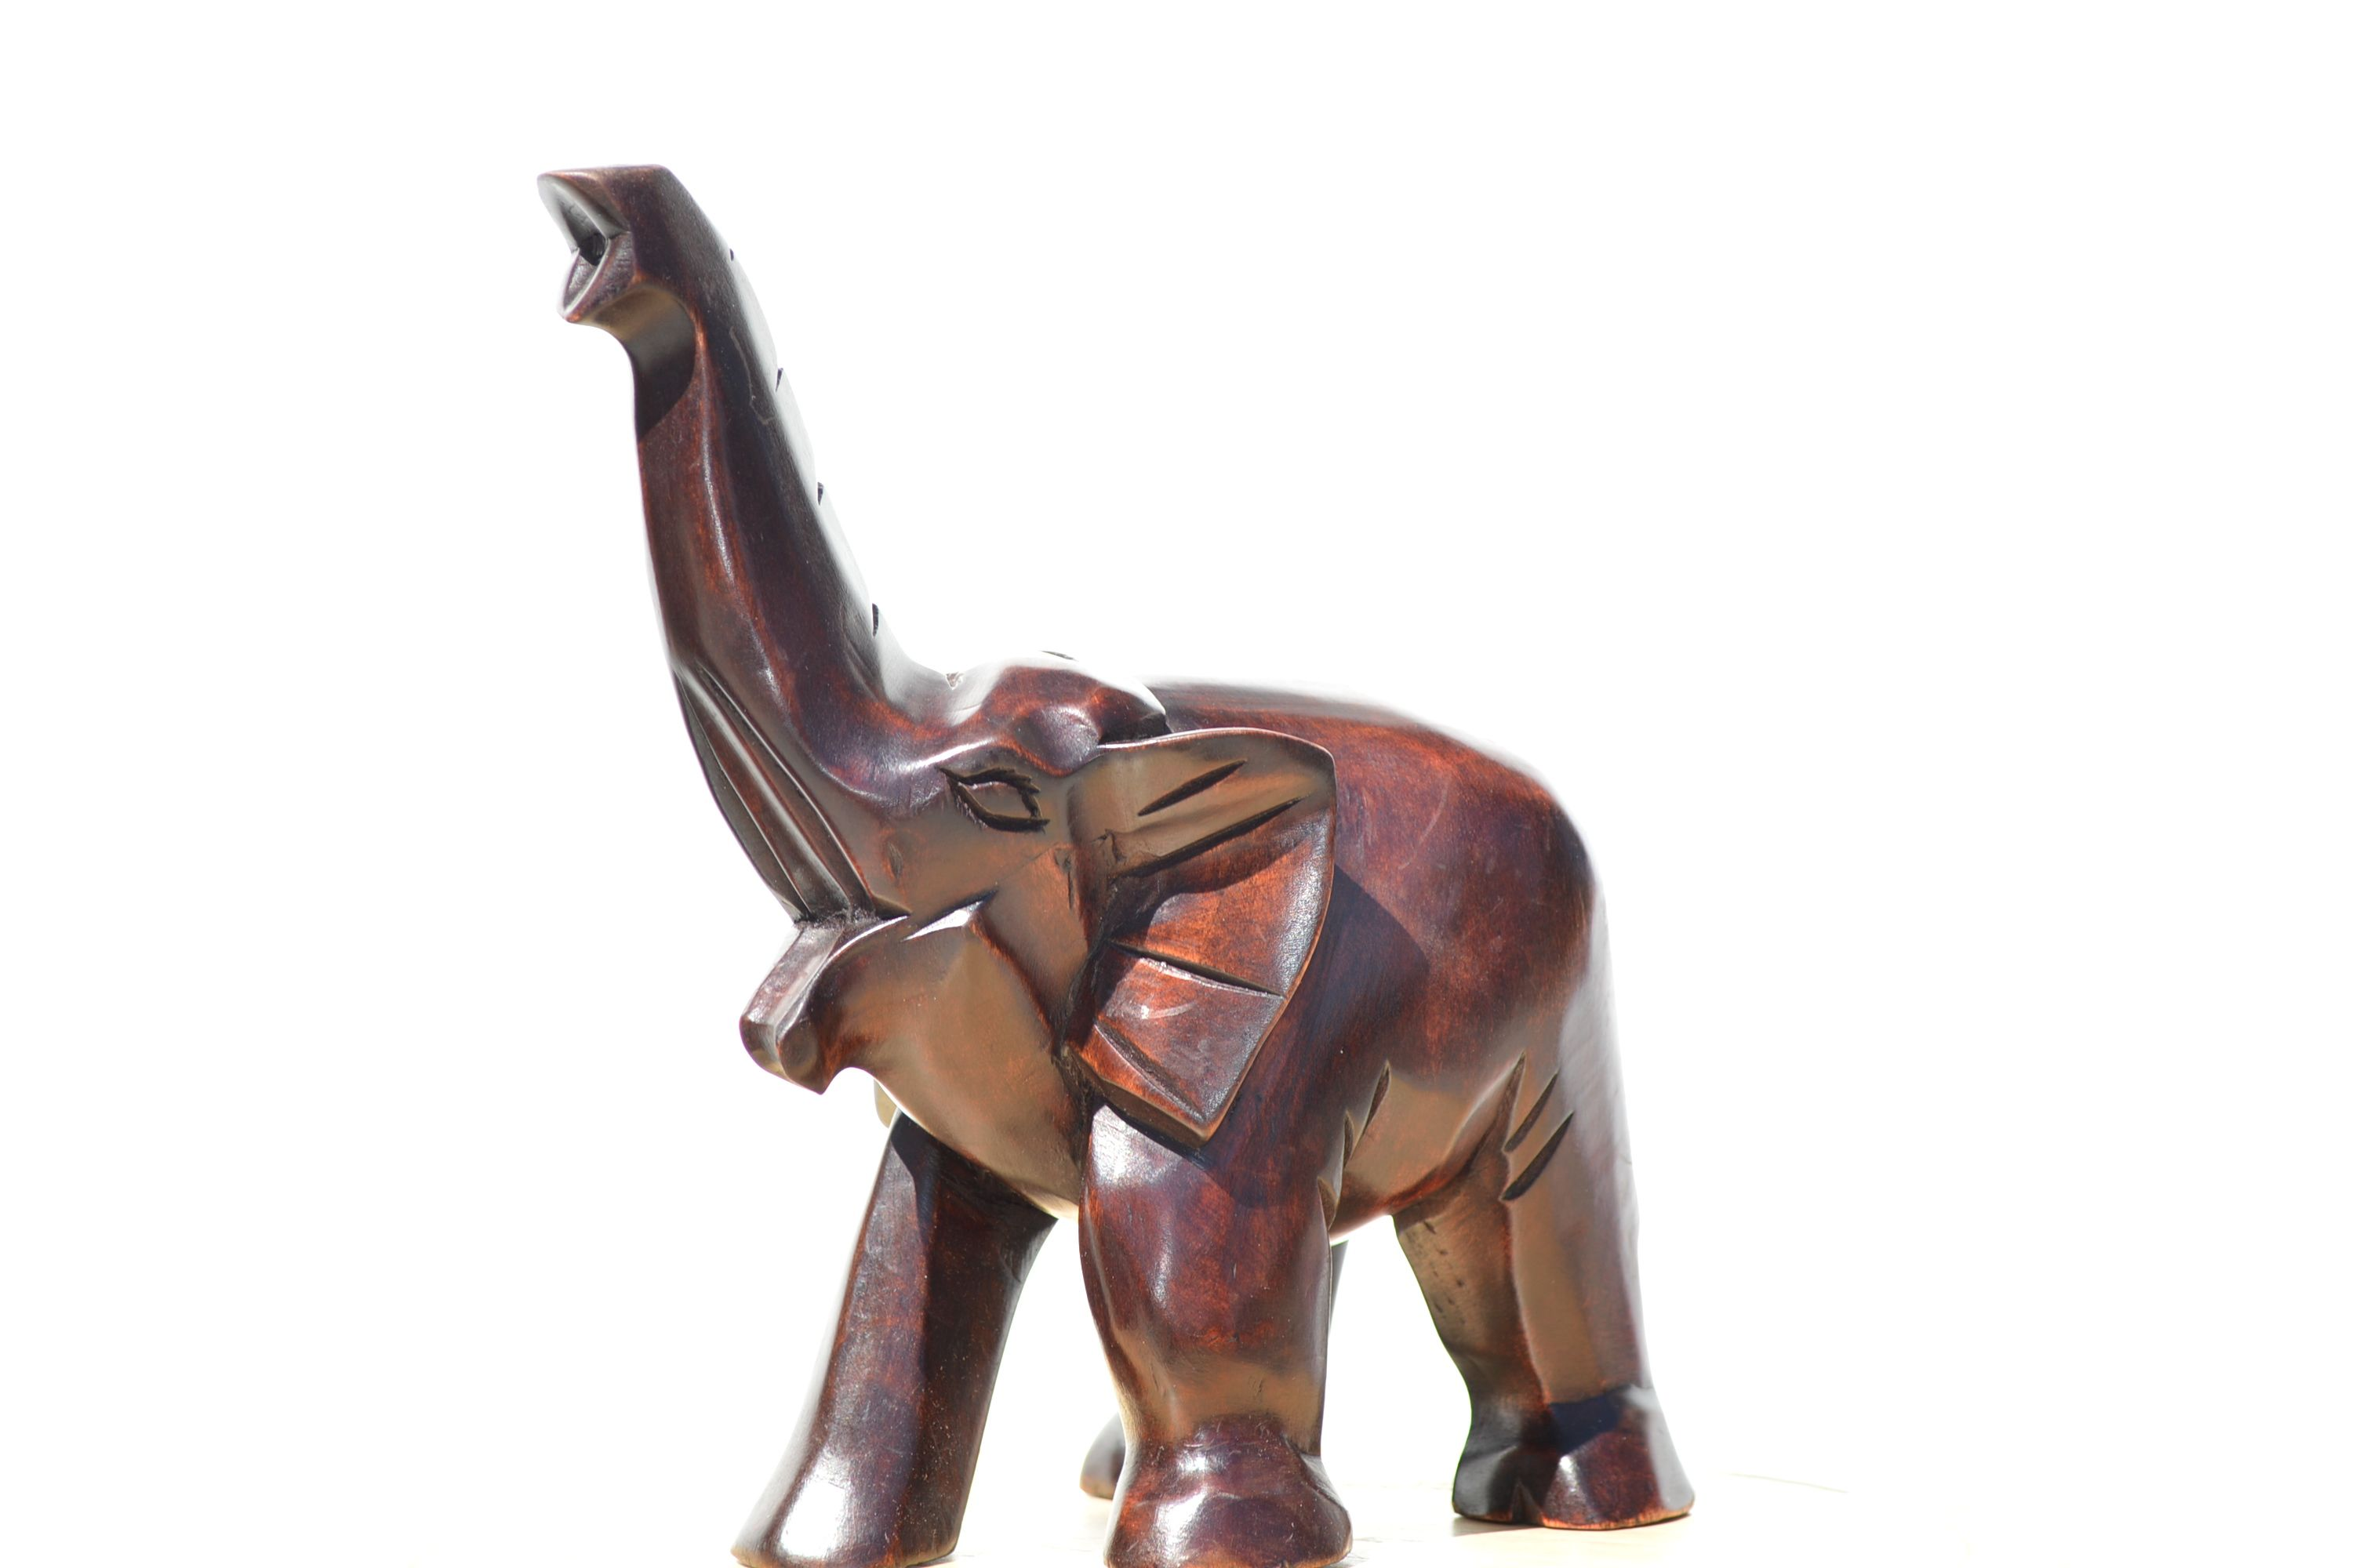 Elephant is the symbol of gallery symbol and sign ideas 9800 african elephant wood carving meaning the elephant is a 9800 african elephant wood carving meaning biocorpaavc